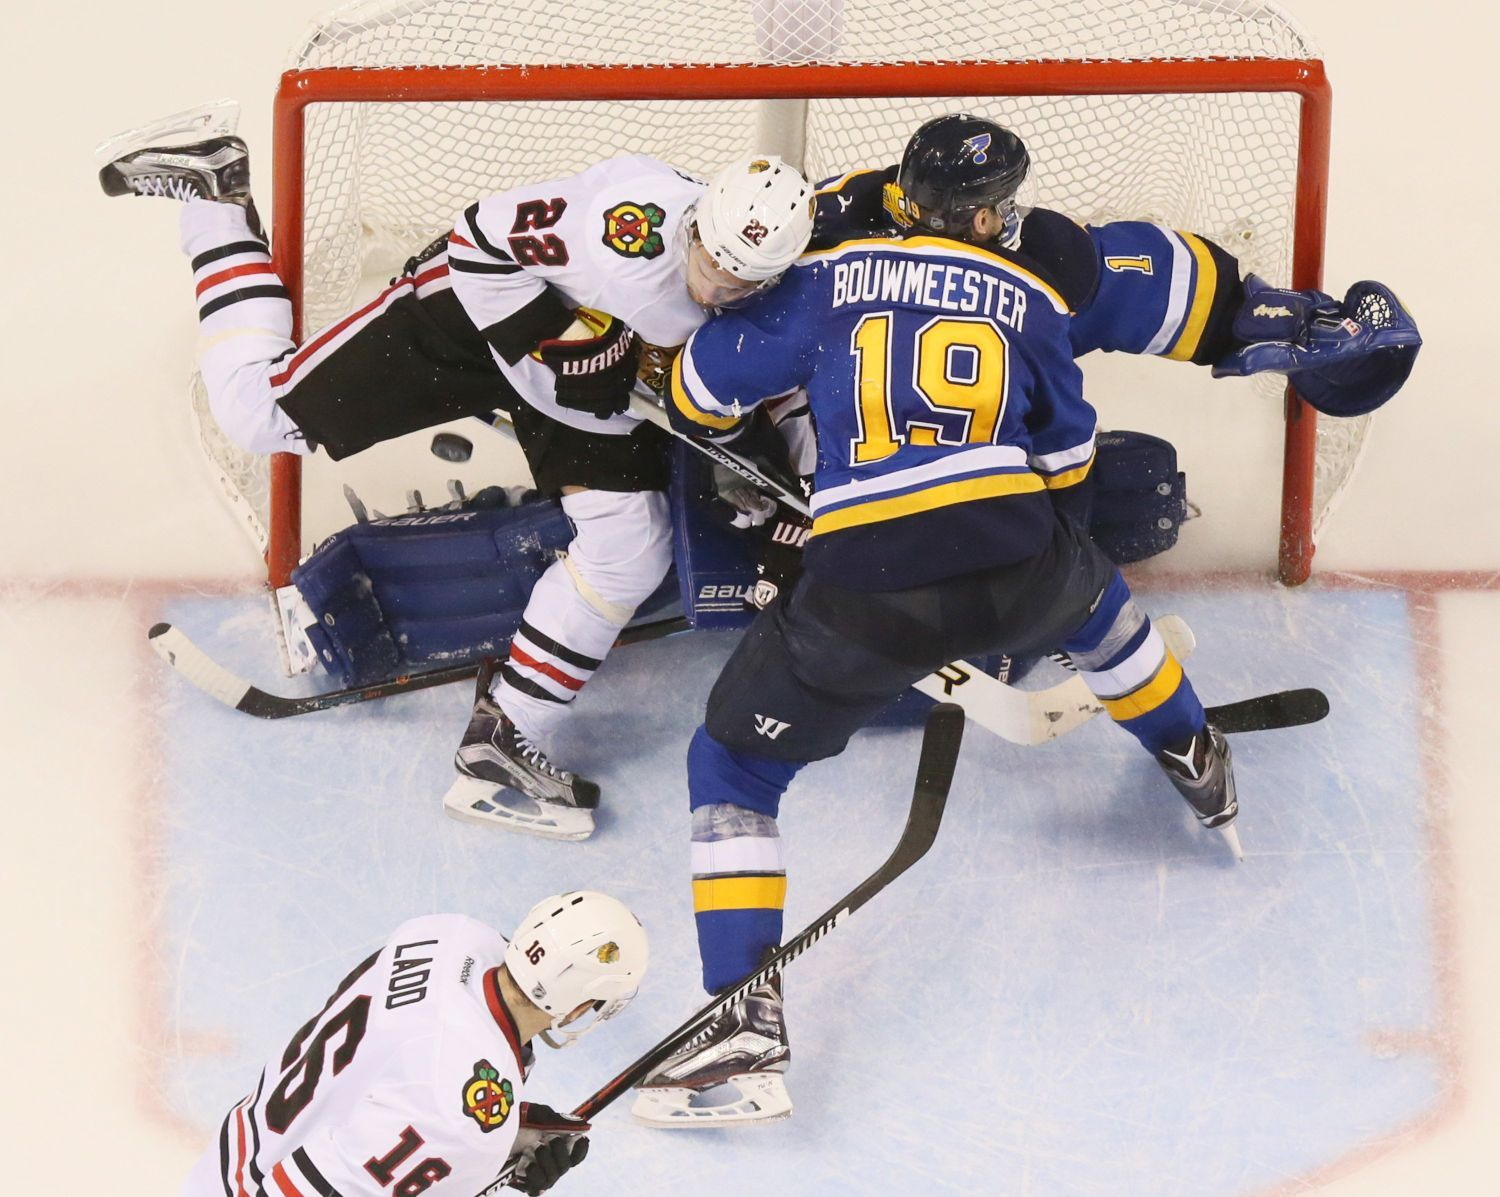 At long last, a playoff series win for Bouwmeester